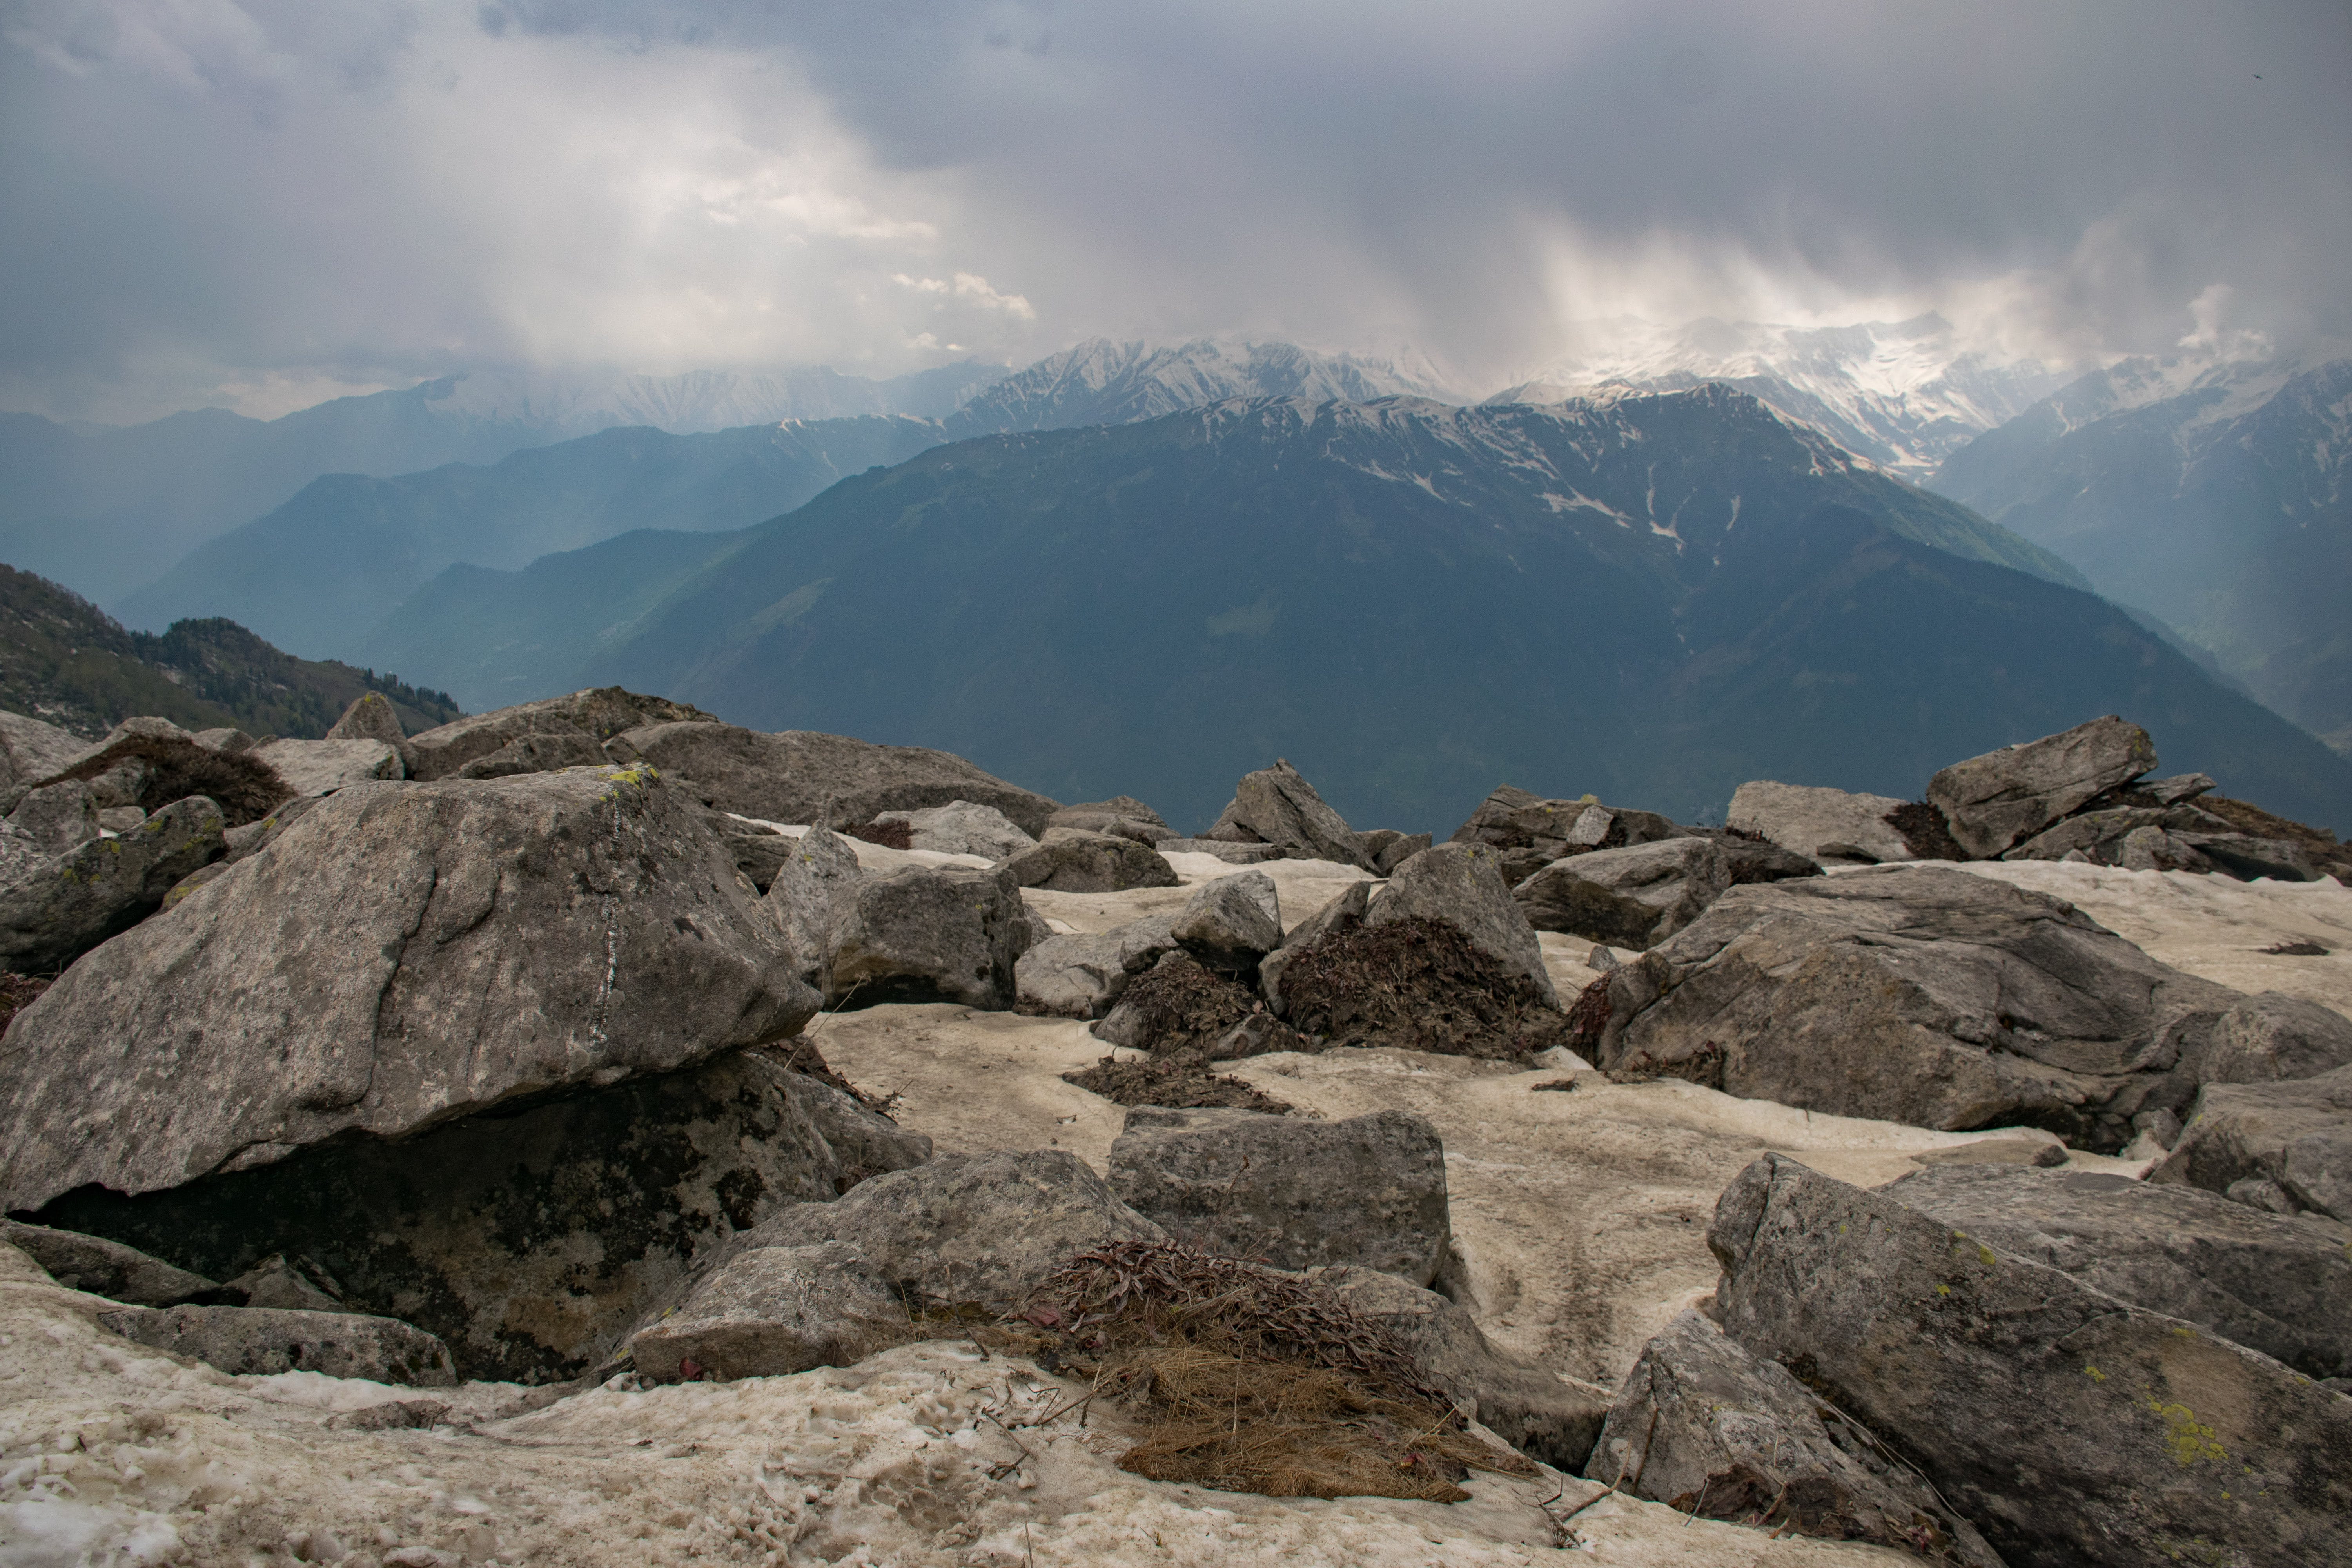 Gray Rocks in Front of Mountain